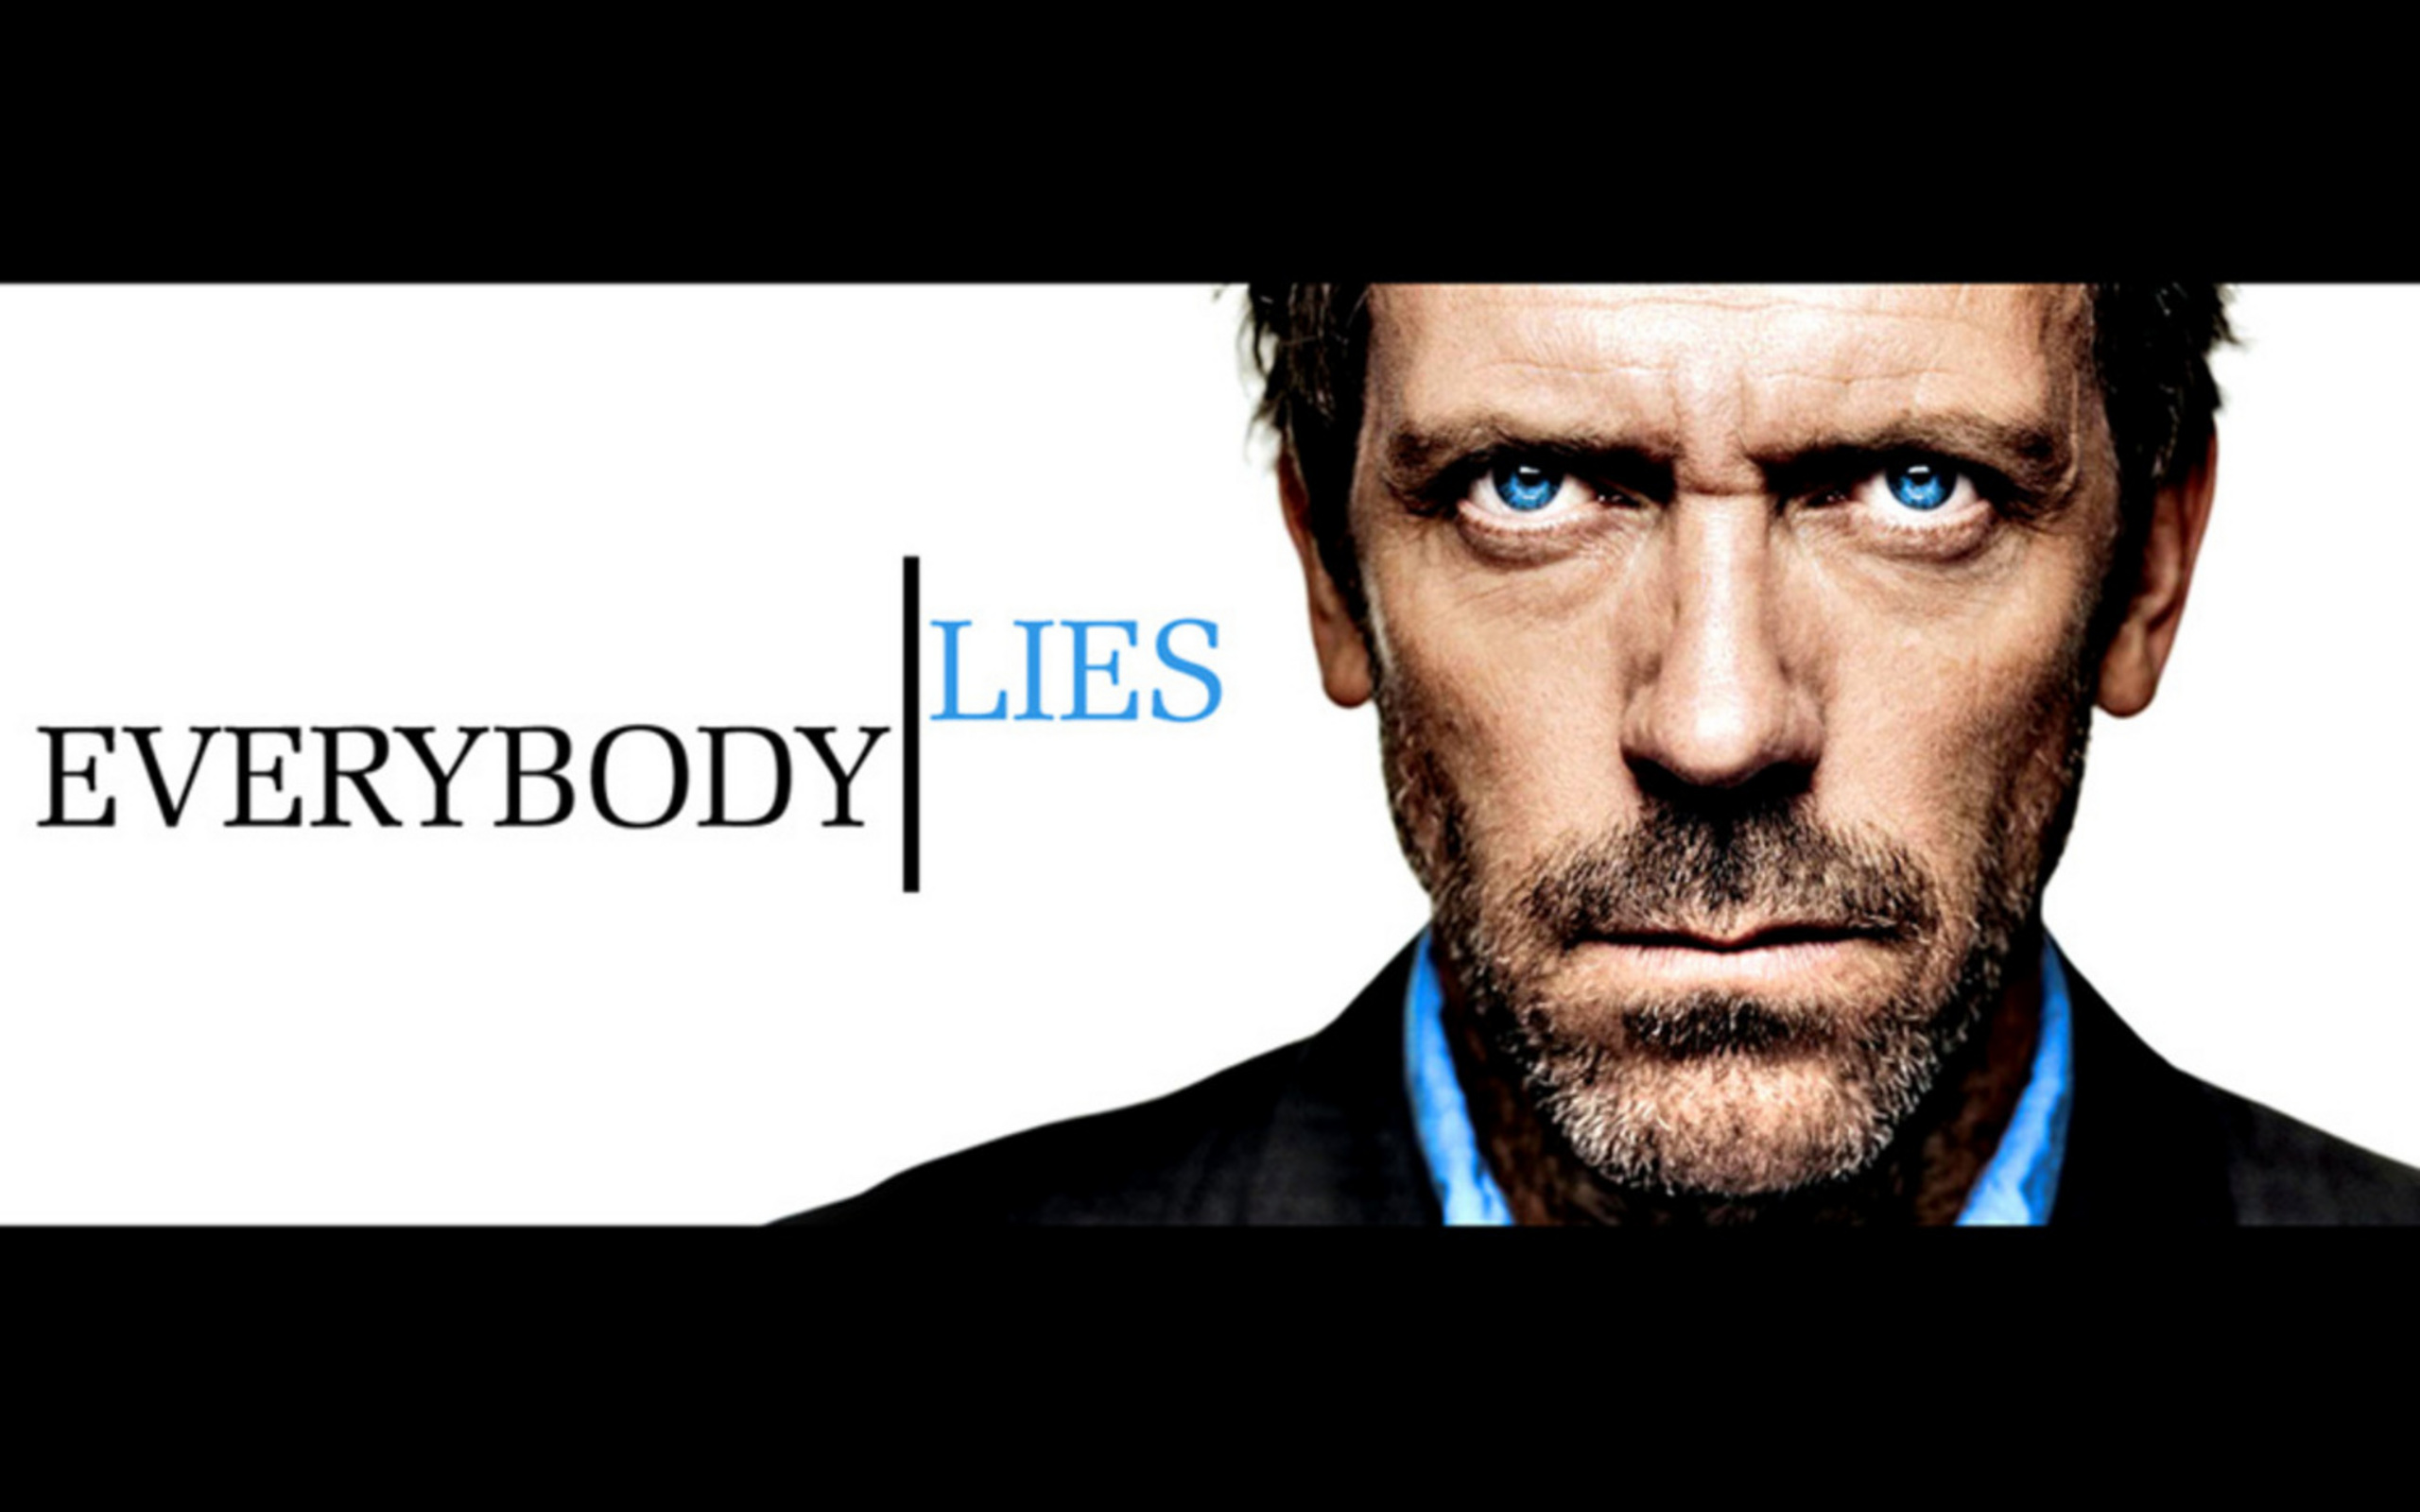 download wallpaper dr house - photo #24